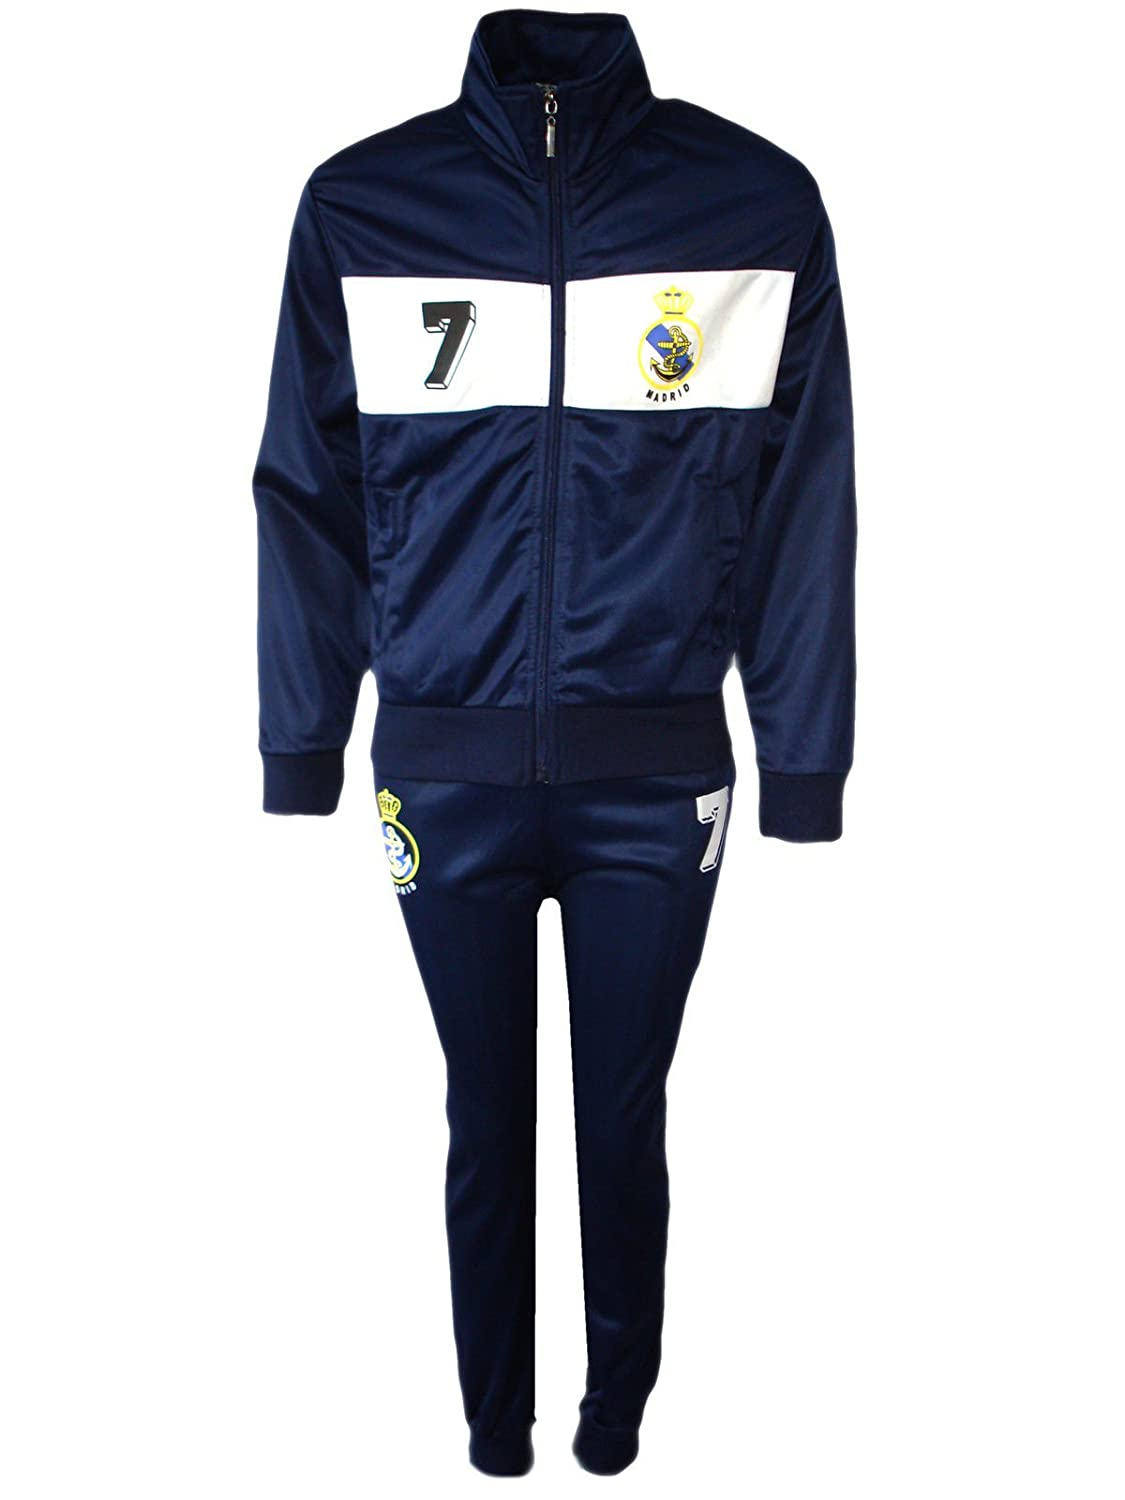 Aelstores - Boys Football Tracksuit Bottoms New Top Training Kit Set Size Age 4-12 Years BNWT